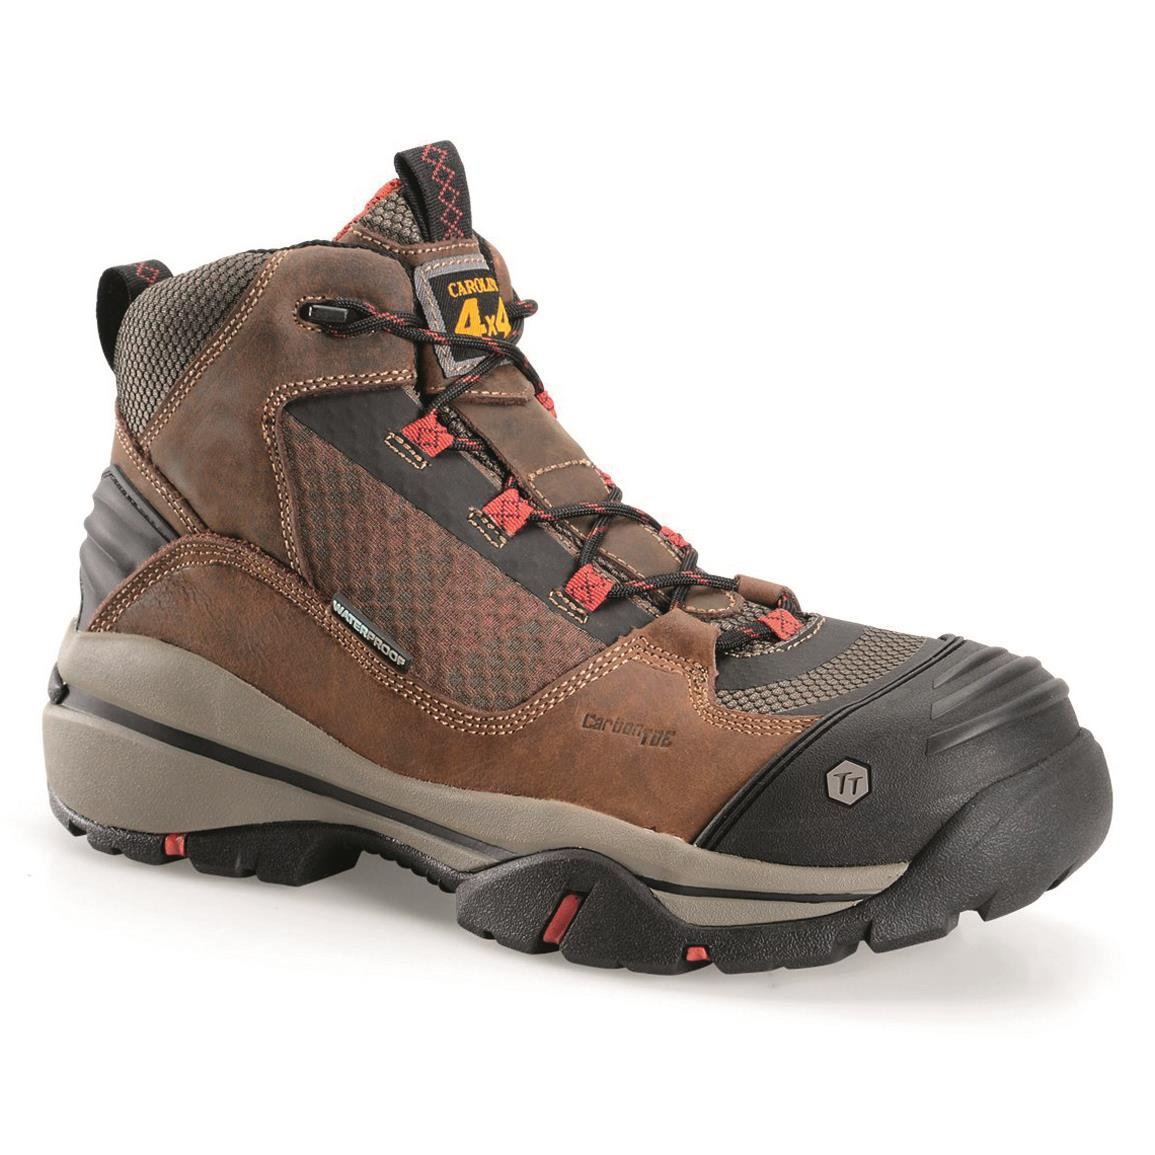 "Carolina Men's 5"" Waterproof Carbon Composite Toe 4x4 Hiker Work Boots, Brown/red"